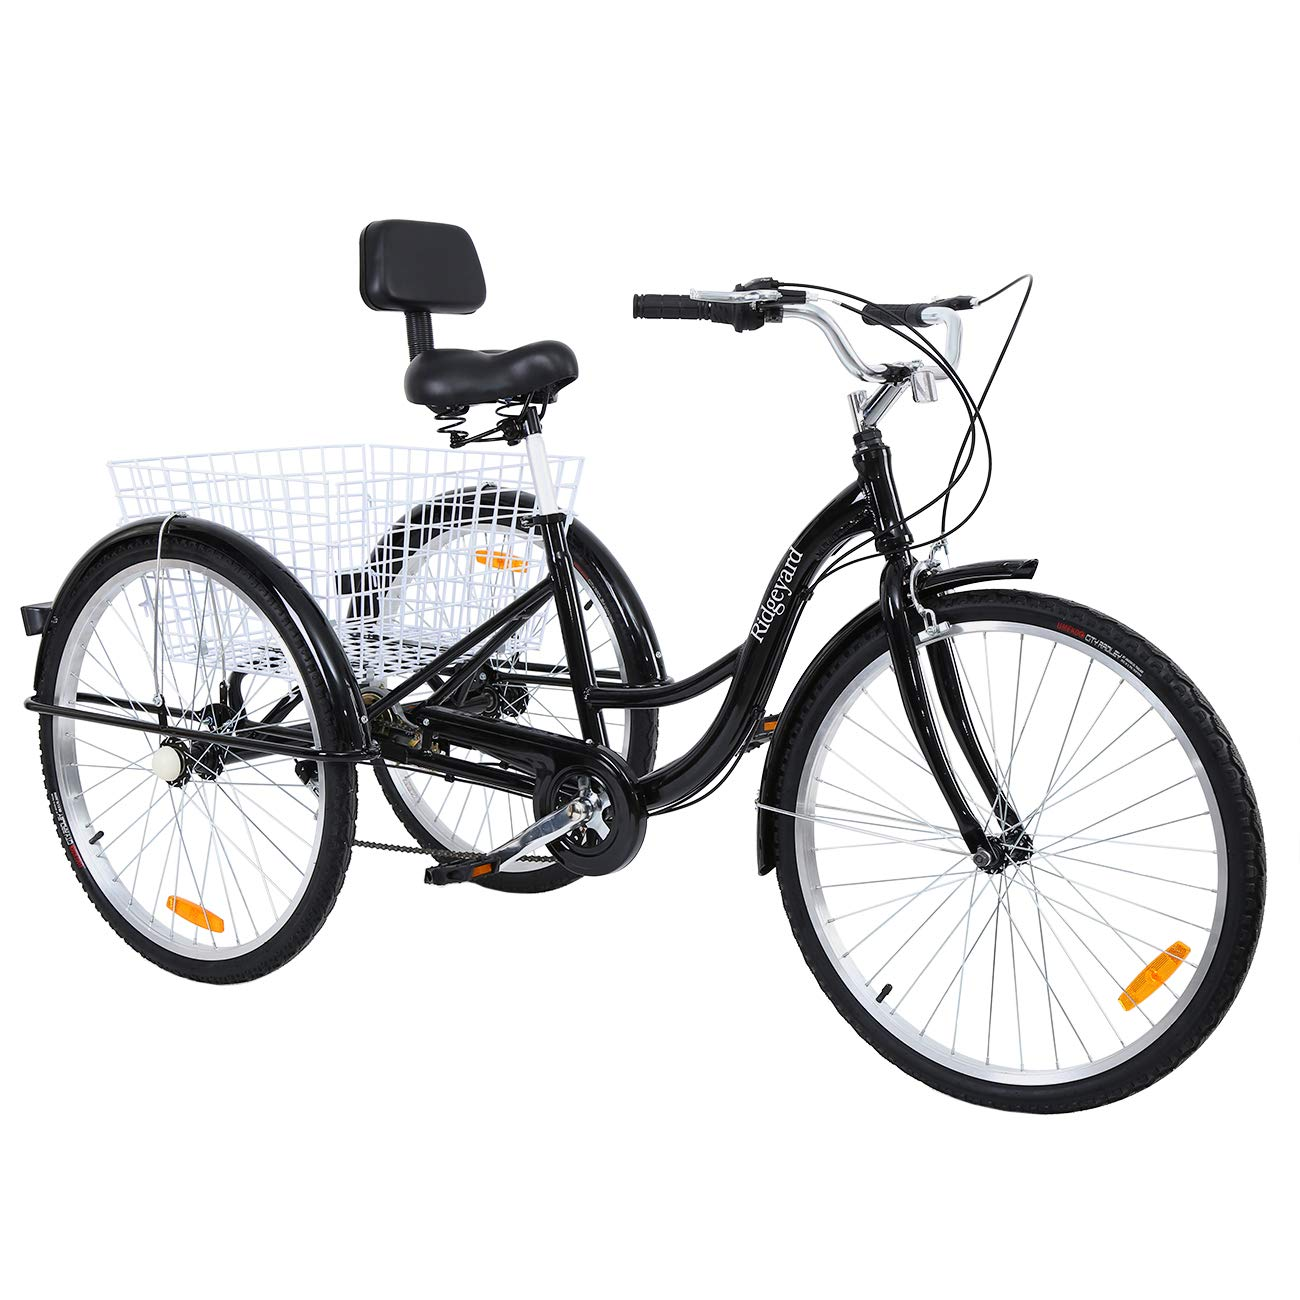 """MuGuang Adult Tricycles 26"""" 7 Speed 3 Wheel Adult Trike Bike Cycling with Shopping Basket (Black)"""